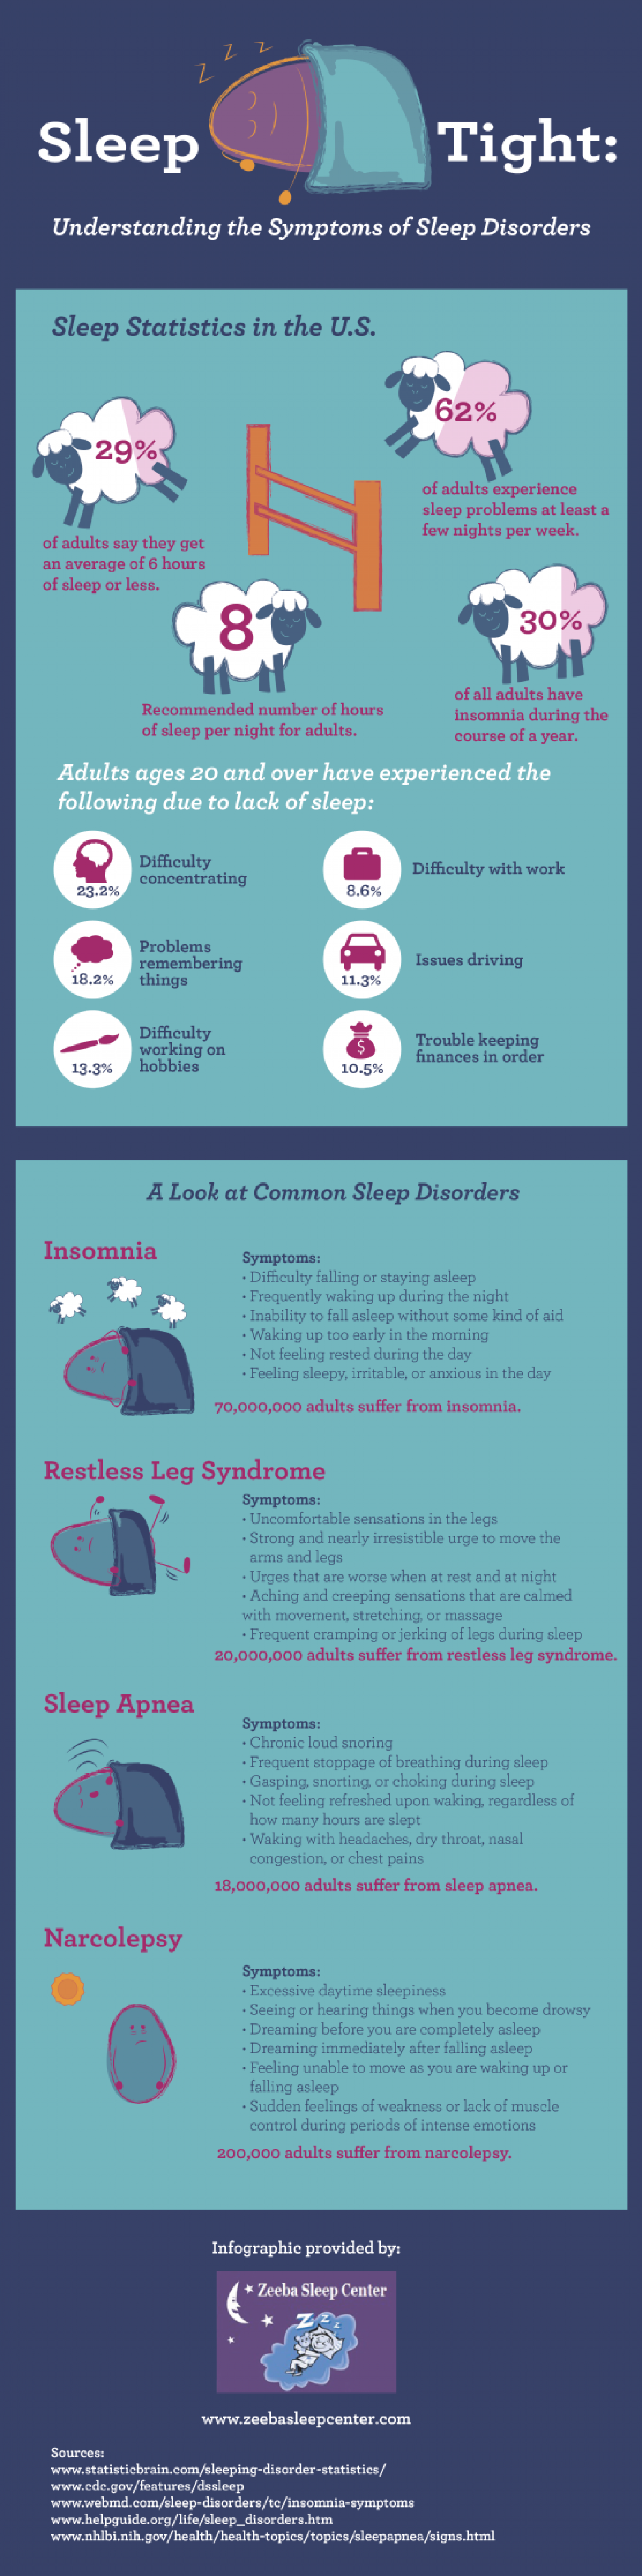 Sleep Tight: Understanding the Symptoms of Sleep Disorders  Infographic